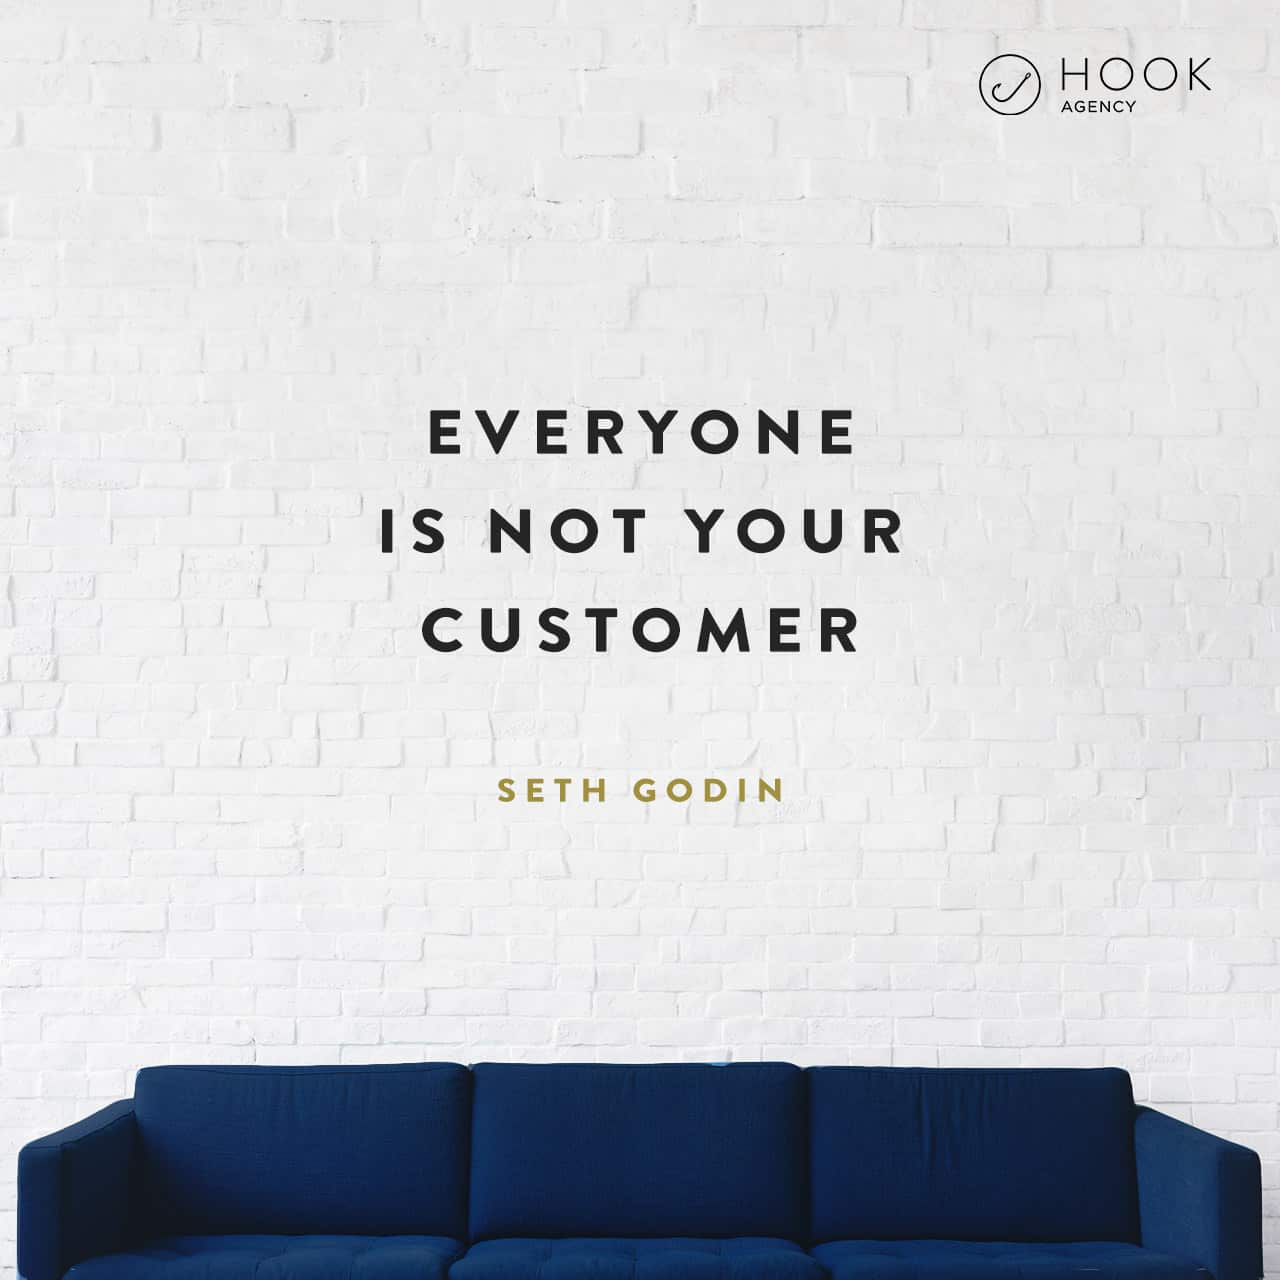 Quotes On Sofa 101 Inspiring Marketing Quotes For Creativity In Your Campaigns